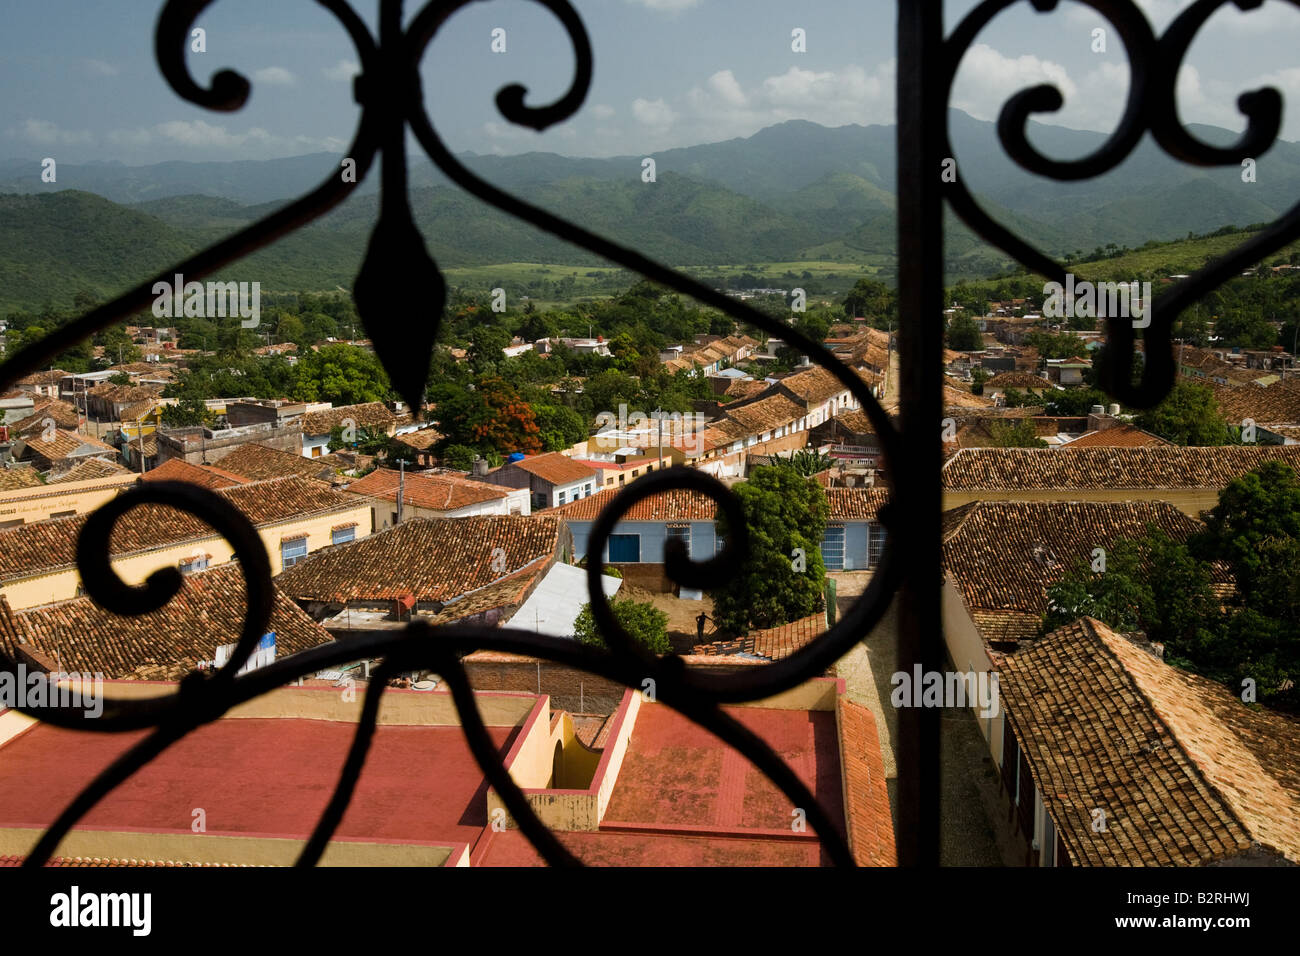 View from the bell tower of the San Francisco de Asis convent over Trinidad, Cuba Stock Photo